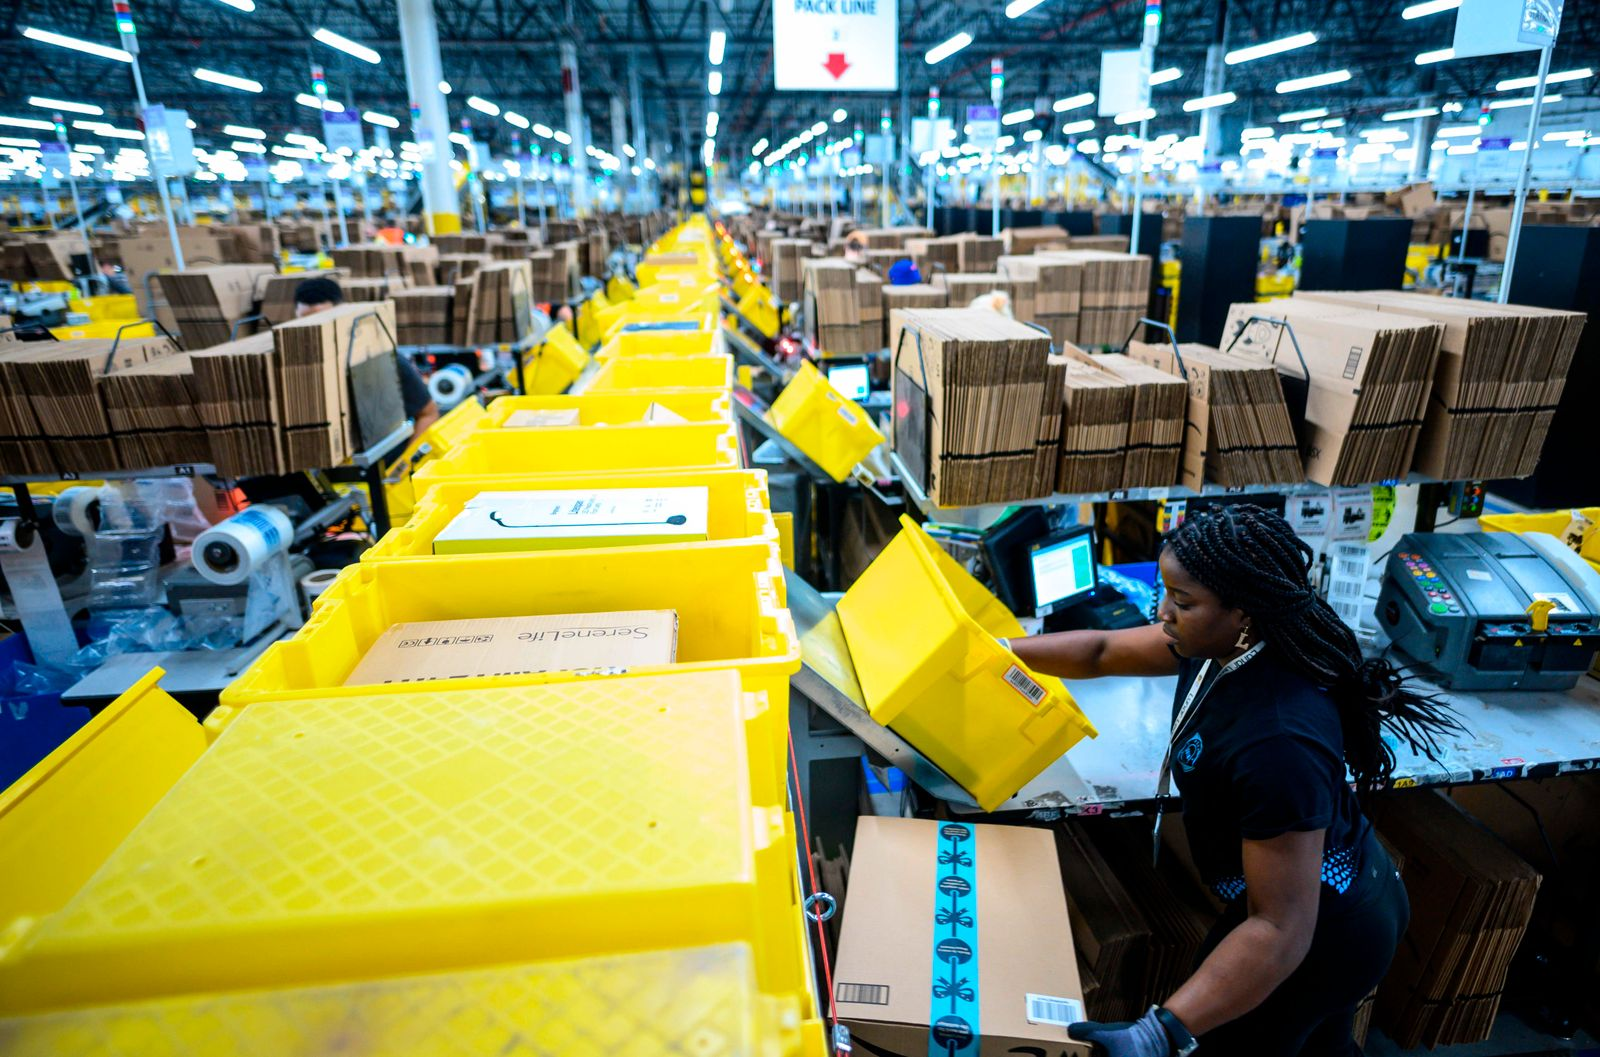 FILES-US-IT-LABOR-LIFESTYLE-AMAZON